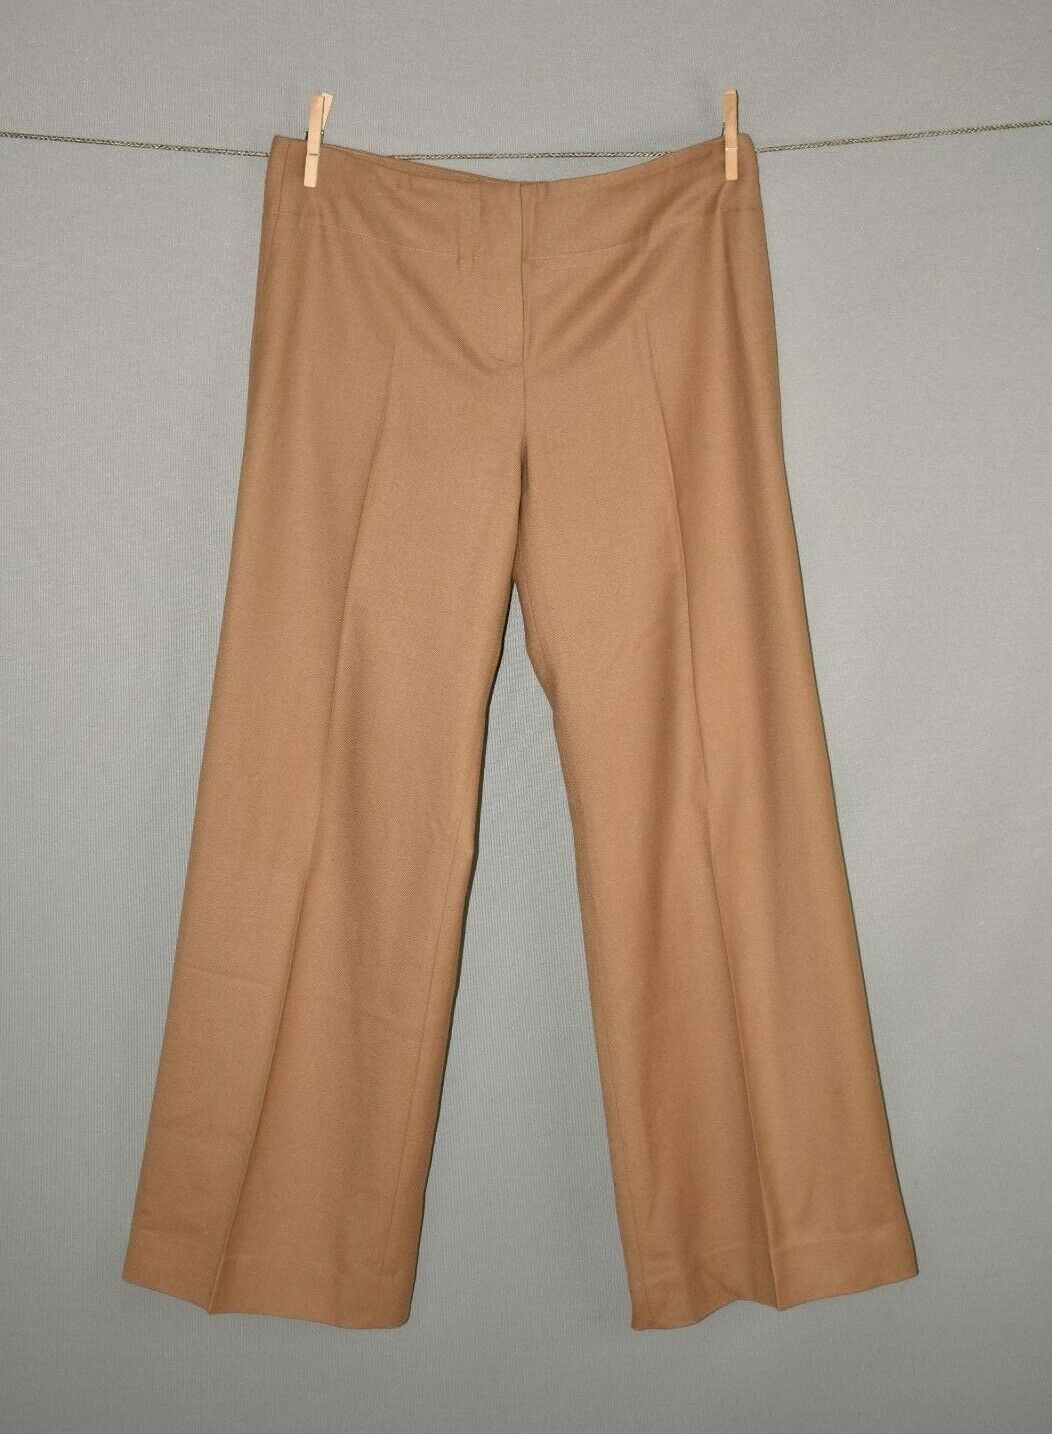 CHLOÉ  Tan Khaki Wide Leg Wool Trouser Pant FR 42   US 10